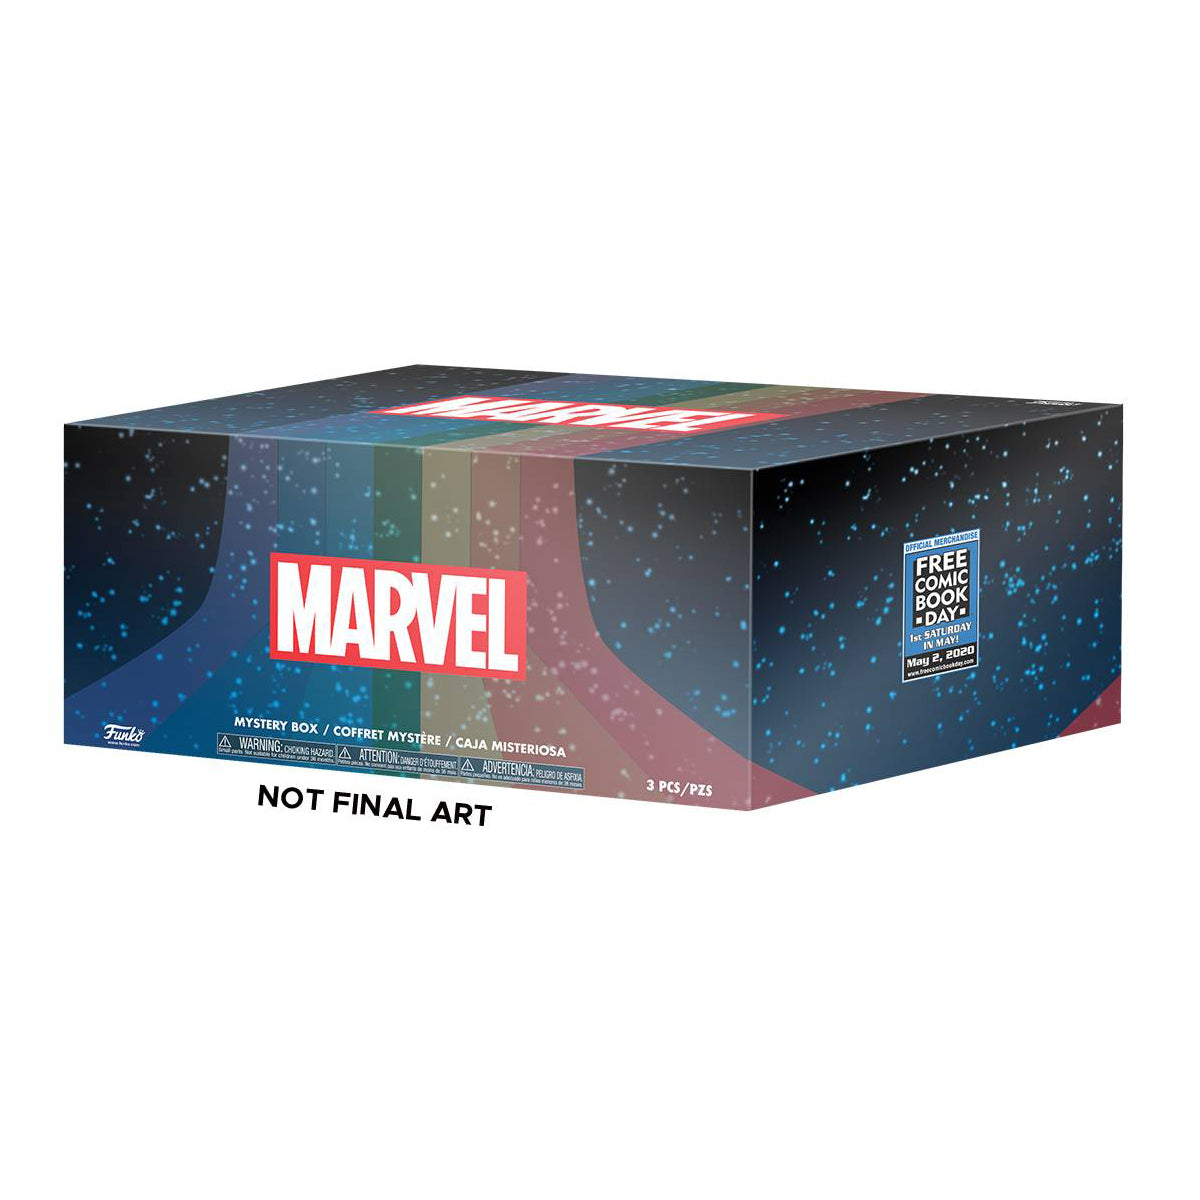 Free Comic Book Day 2020 Exclusive Marvel Mystery Box